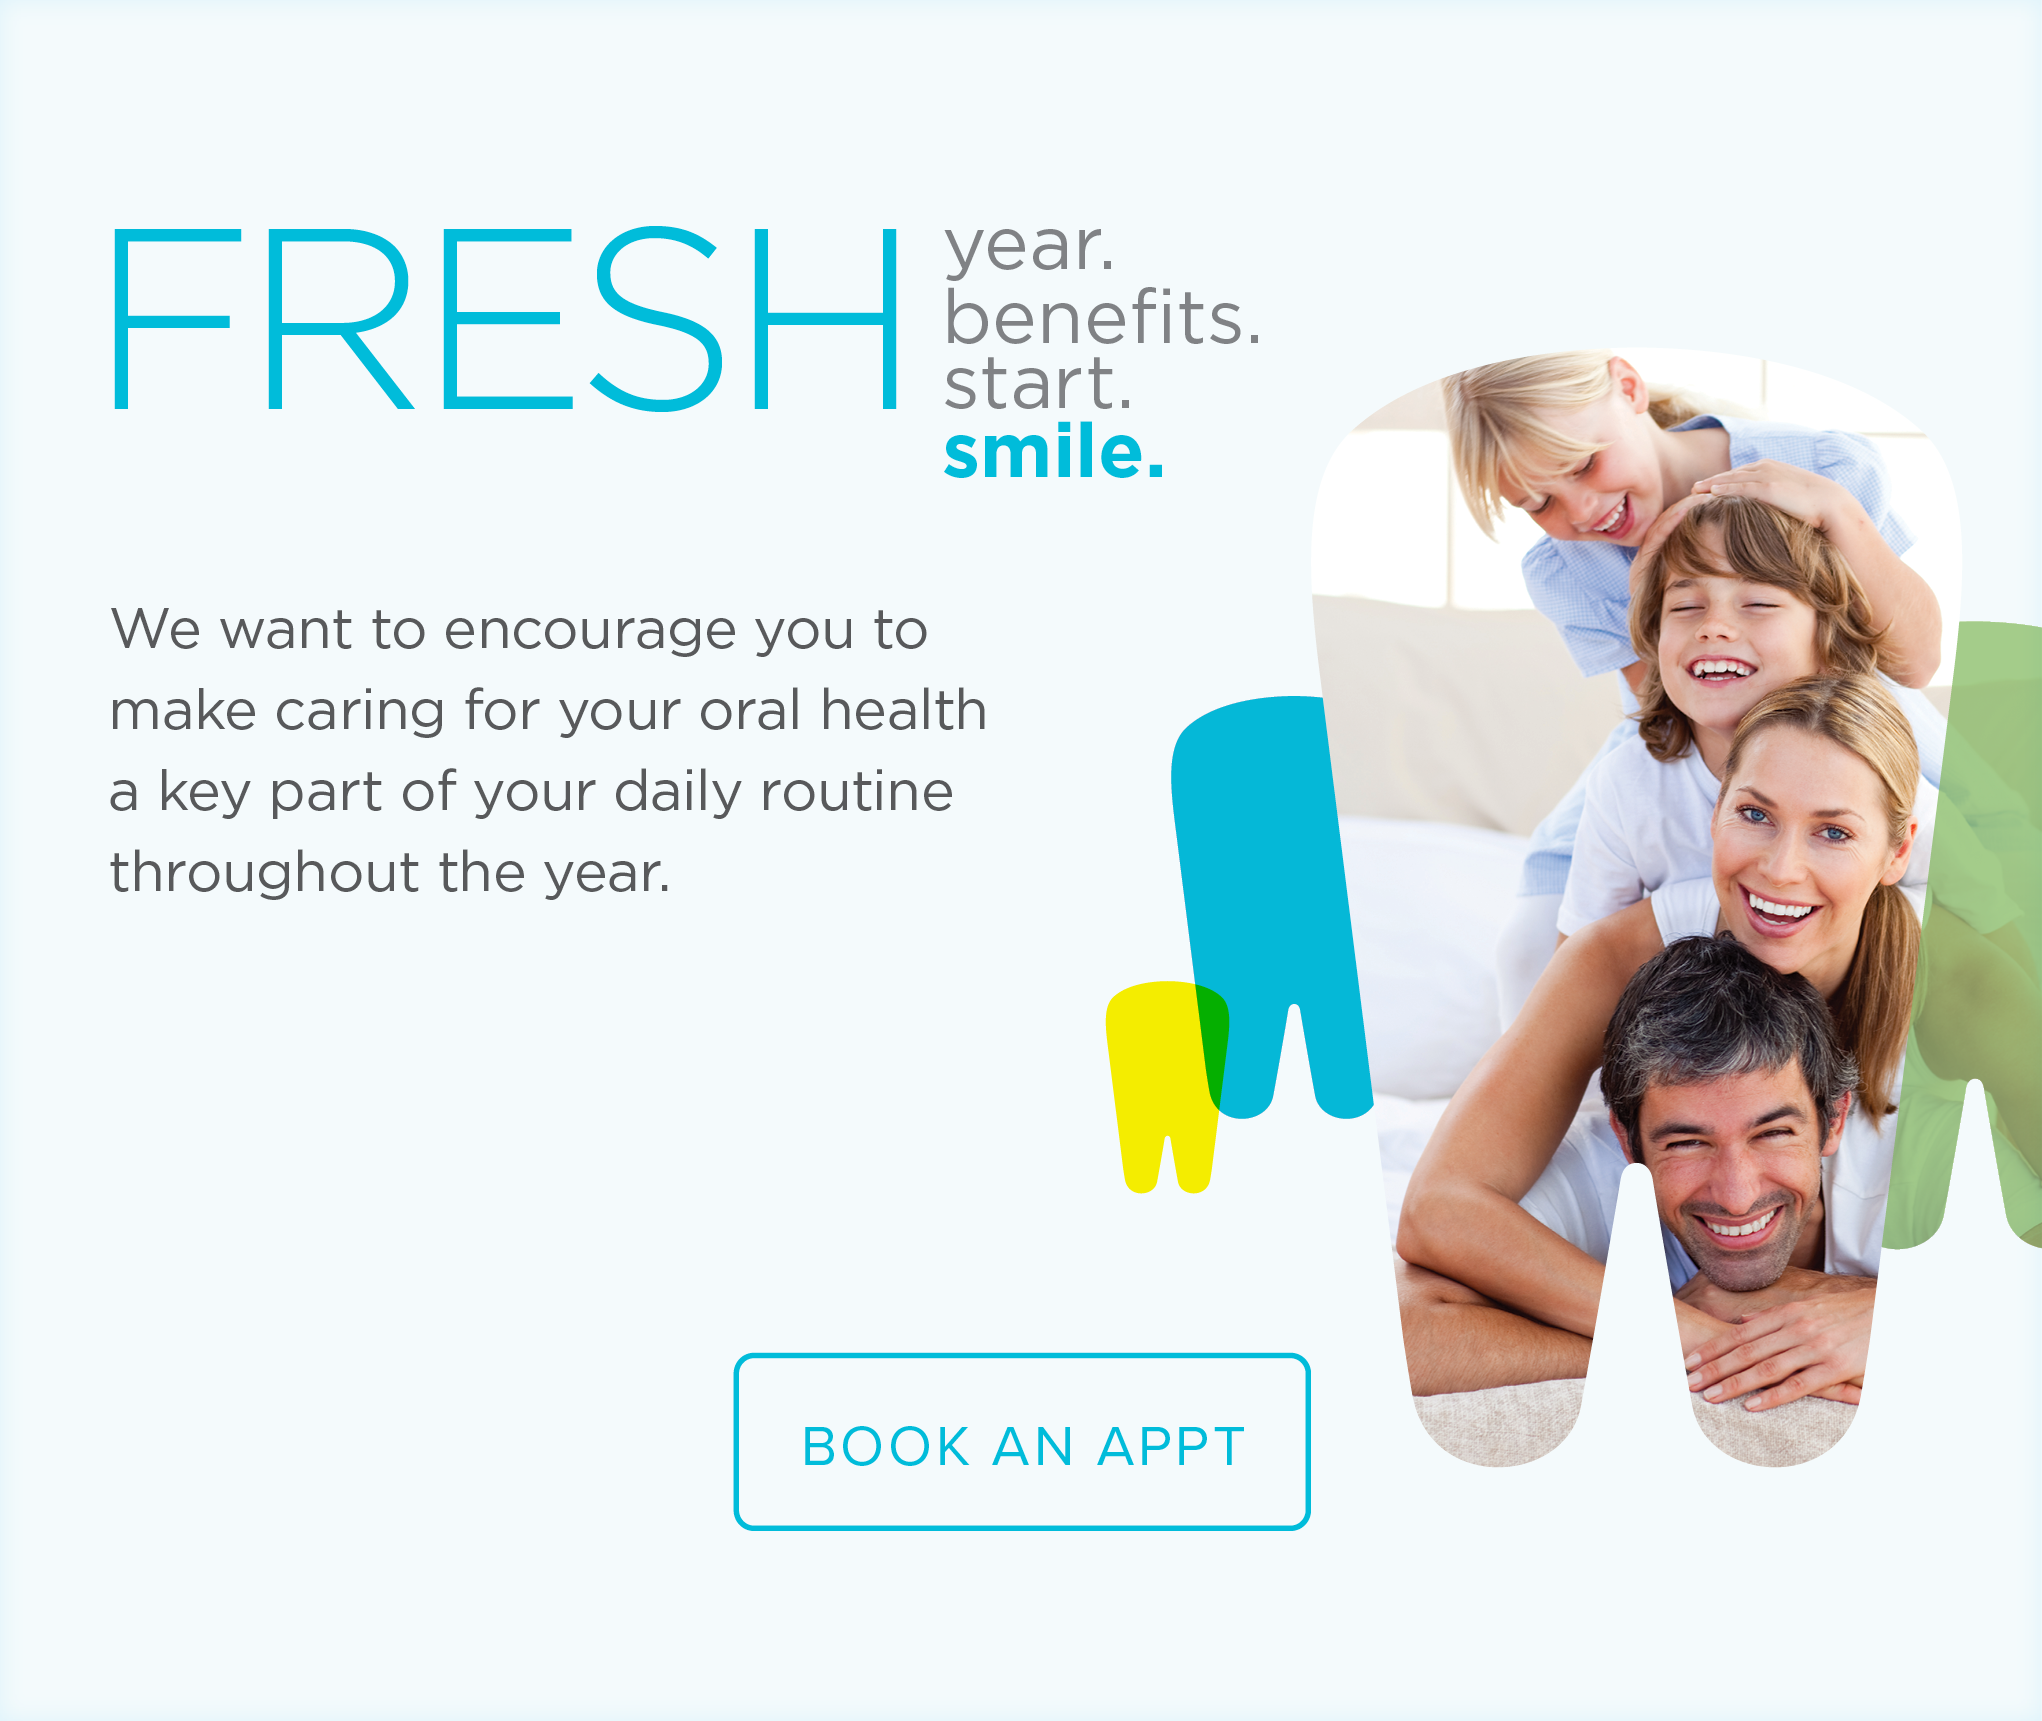 Mission Oaks Dental Group - Make the Most of Your Benefits